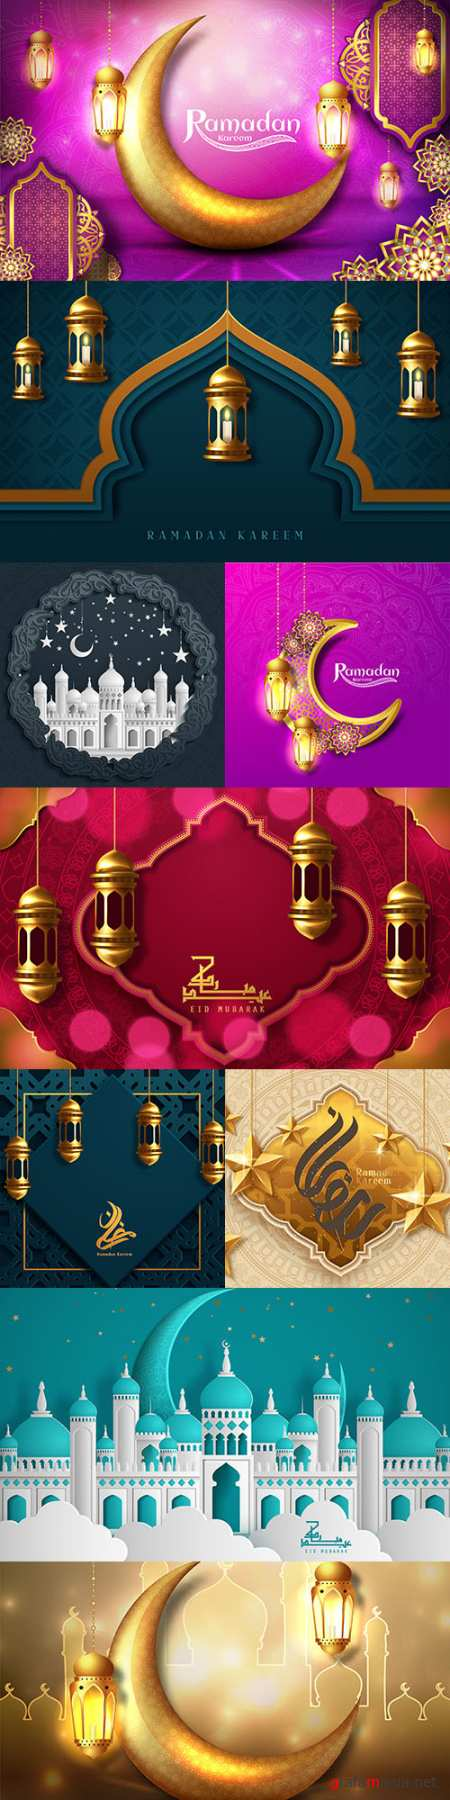 Ramadan Kareem Arab calligraphy design illustrations 18